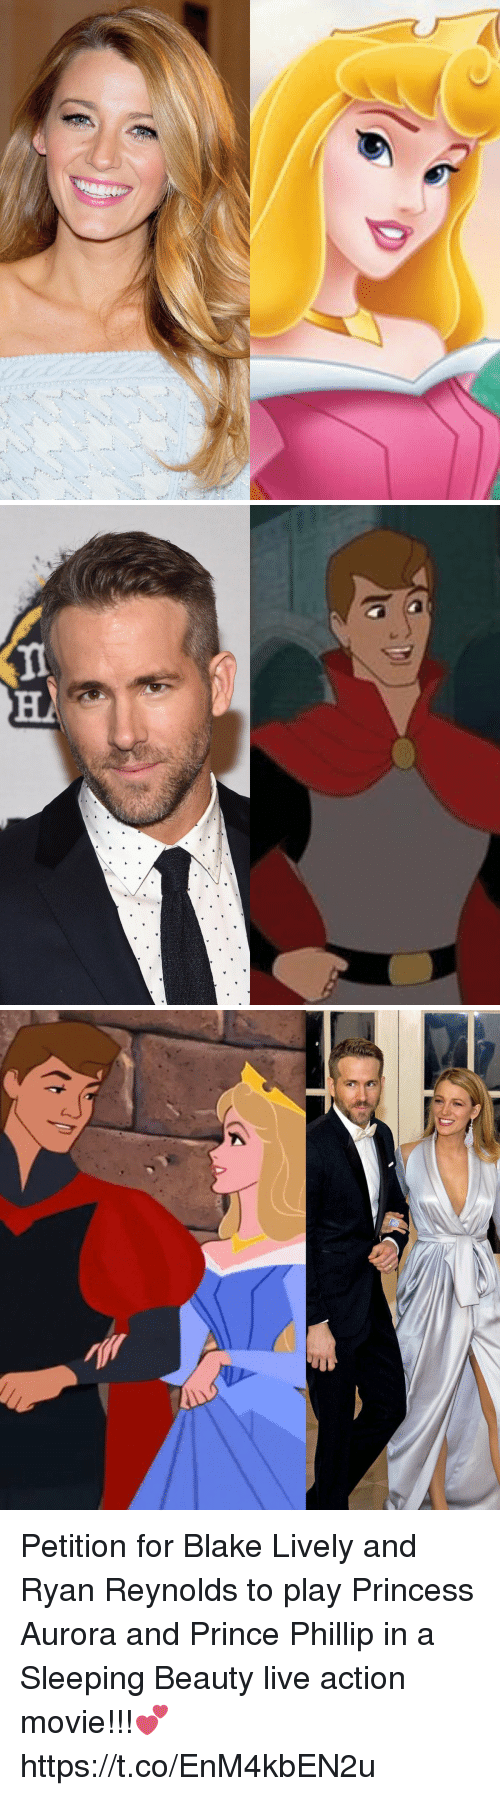 Prince, Sleeping Beauty, and Ryan Reynolds: Petition for Blake Lively and Ryan Reynolds to play Princess Aurora and Prince Phillip in a Sleeping Beauty live action movie!!!💕 https://t.co/EnM4kbEN2u